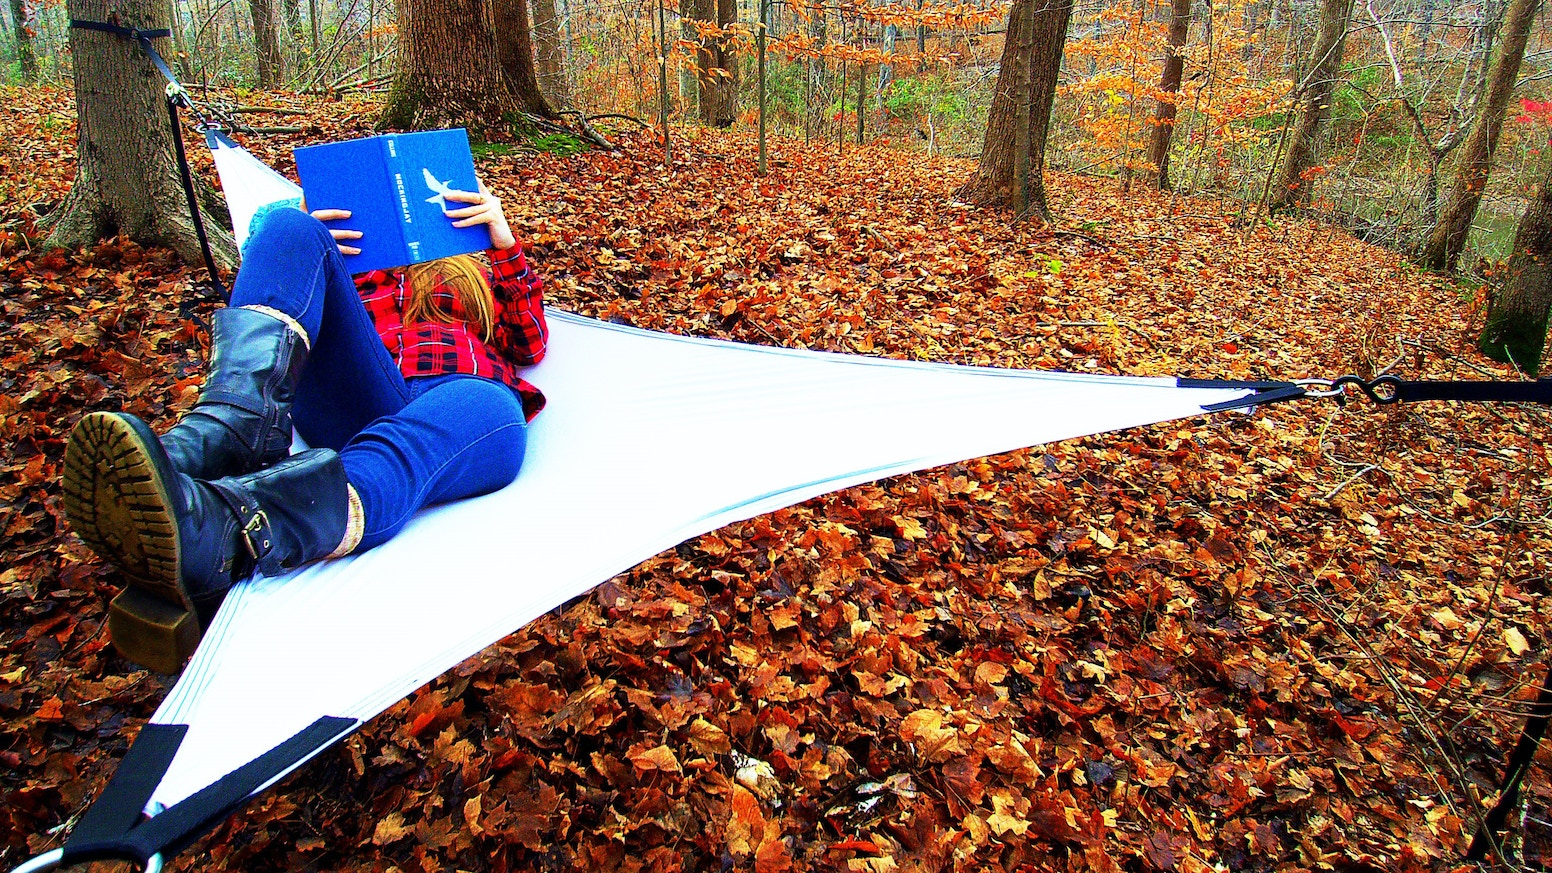 Lightweight, three-point stackable hammocks that will revolutionize the outdoor gear industry.